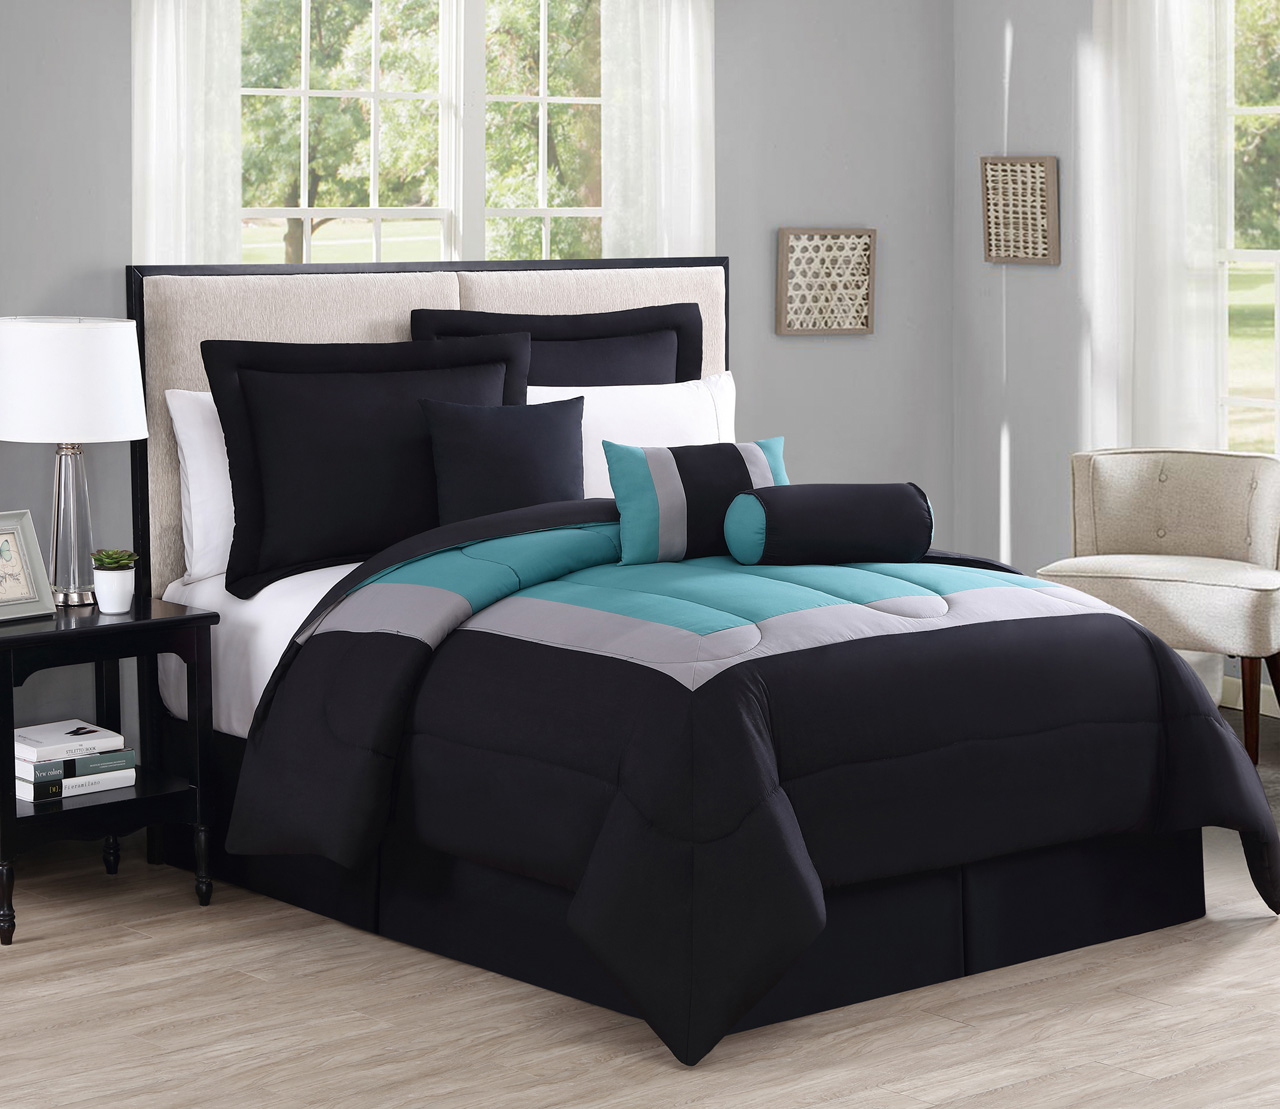 7 Piece Rosslyn Black Teal Comforter Set